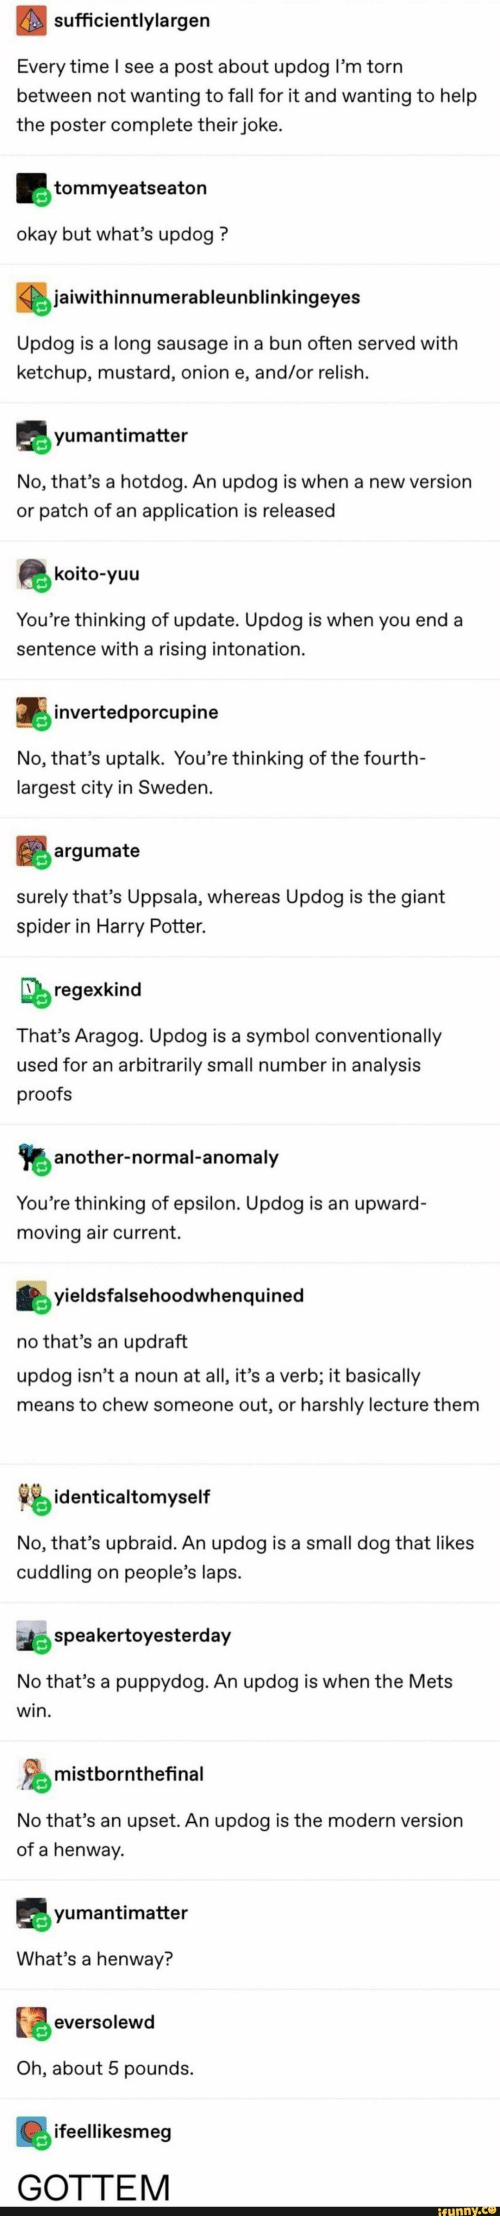 Proofs: sufficientlylargen  Every time l see a post about updog l'm torn  between not wanting to fall for it and wanting to help  the poster complete their joke  tommyeatseaton  okay but what's updog?  jaiwithinnumerableunblinkingeyes  Updog is a long sausage in a bun often served with  ketchup, mustard, onion e, and/or relish.  yumantimatter  No, that's a hotdog. An updog is when a new version  or patch of an application is released  koito-yuu  You're thinking of update. Updog is when you end a  sentence with a rising intonation  jinvertedporcupine  No, that's uptalk. You're thinking of the fourth-  largest city in Sweden.  argumate  surely that's Uppsala, whereas Updog is the giant  spider in Harry Potter.  regexkind  That's Aragog. Updog is a symbol conventionally  used for an arbitrarily small number in analysis  proofs  another-normal-anomaly  You're thinking of epsilon. Updog is an upward-  moving air current.  yieldsfalsehoodwhenquined  no that's an updraft  updog isn't a noun at all, it's a verb; it basically  means to chew someone out, or harshly lecture them  identicaltomyself  No, that's upbraid. An updog is a small dog that likes  cuddling on people's laps  speakertoyesterday  No that's a puppydog. An updog is when the Mets  win  mistbornthefinal  No that's an upset. An updog is the modern version  of a henway  yumantimatter  What's a henway?  eversolewd  Oh, about 5 pounds  ifeellikesmeg  GOTTEM